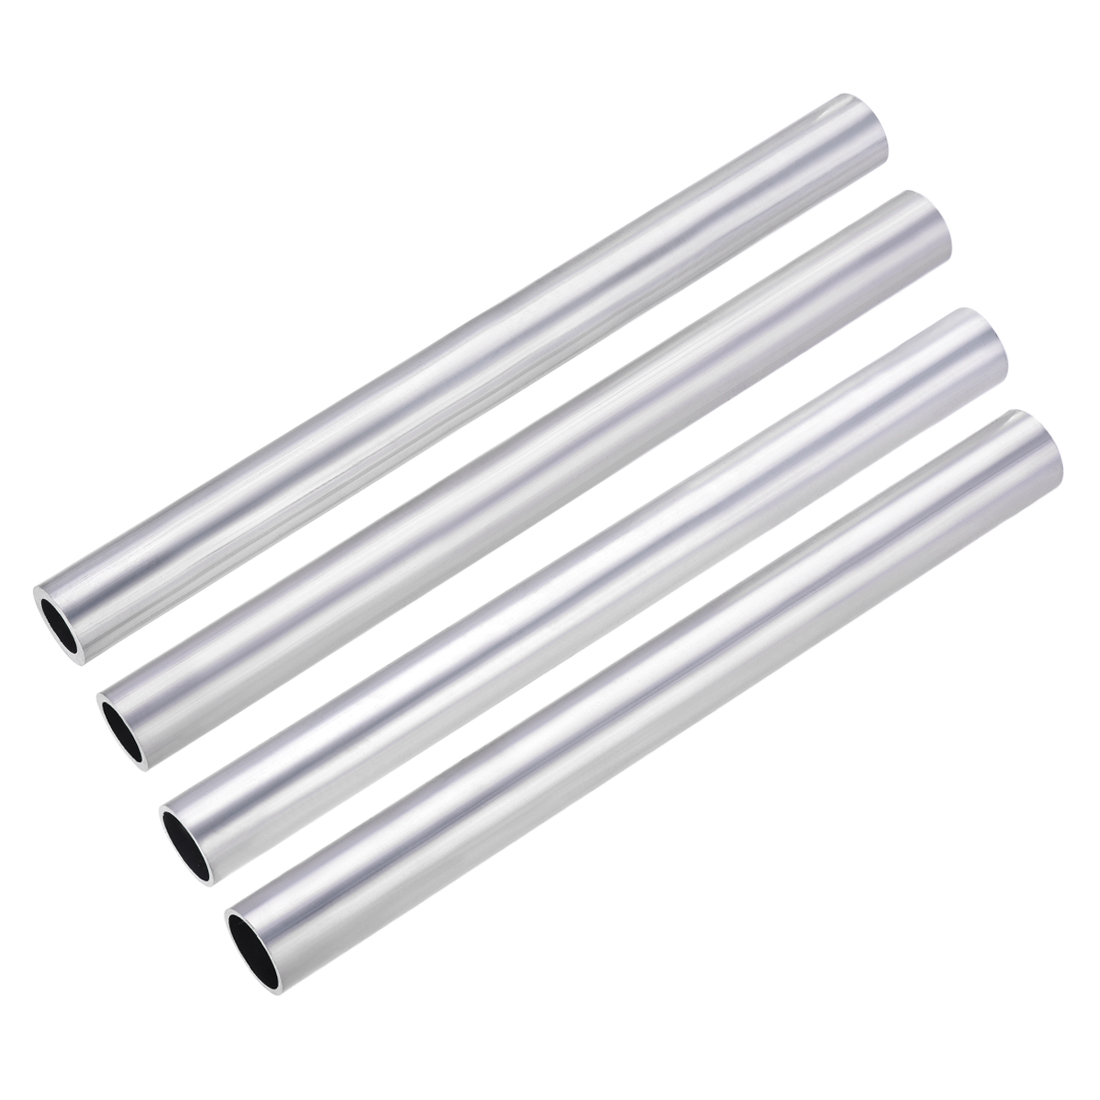 uxcell 1pc 6063 Aluminum Round Tube 21mm-30mm OD 300mm Length Seamless Straight Tubing for DIY air intake, frames